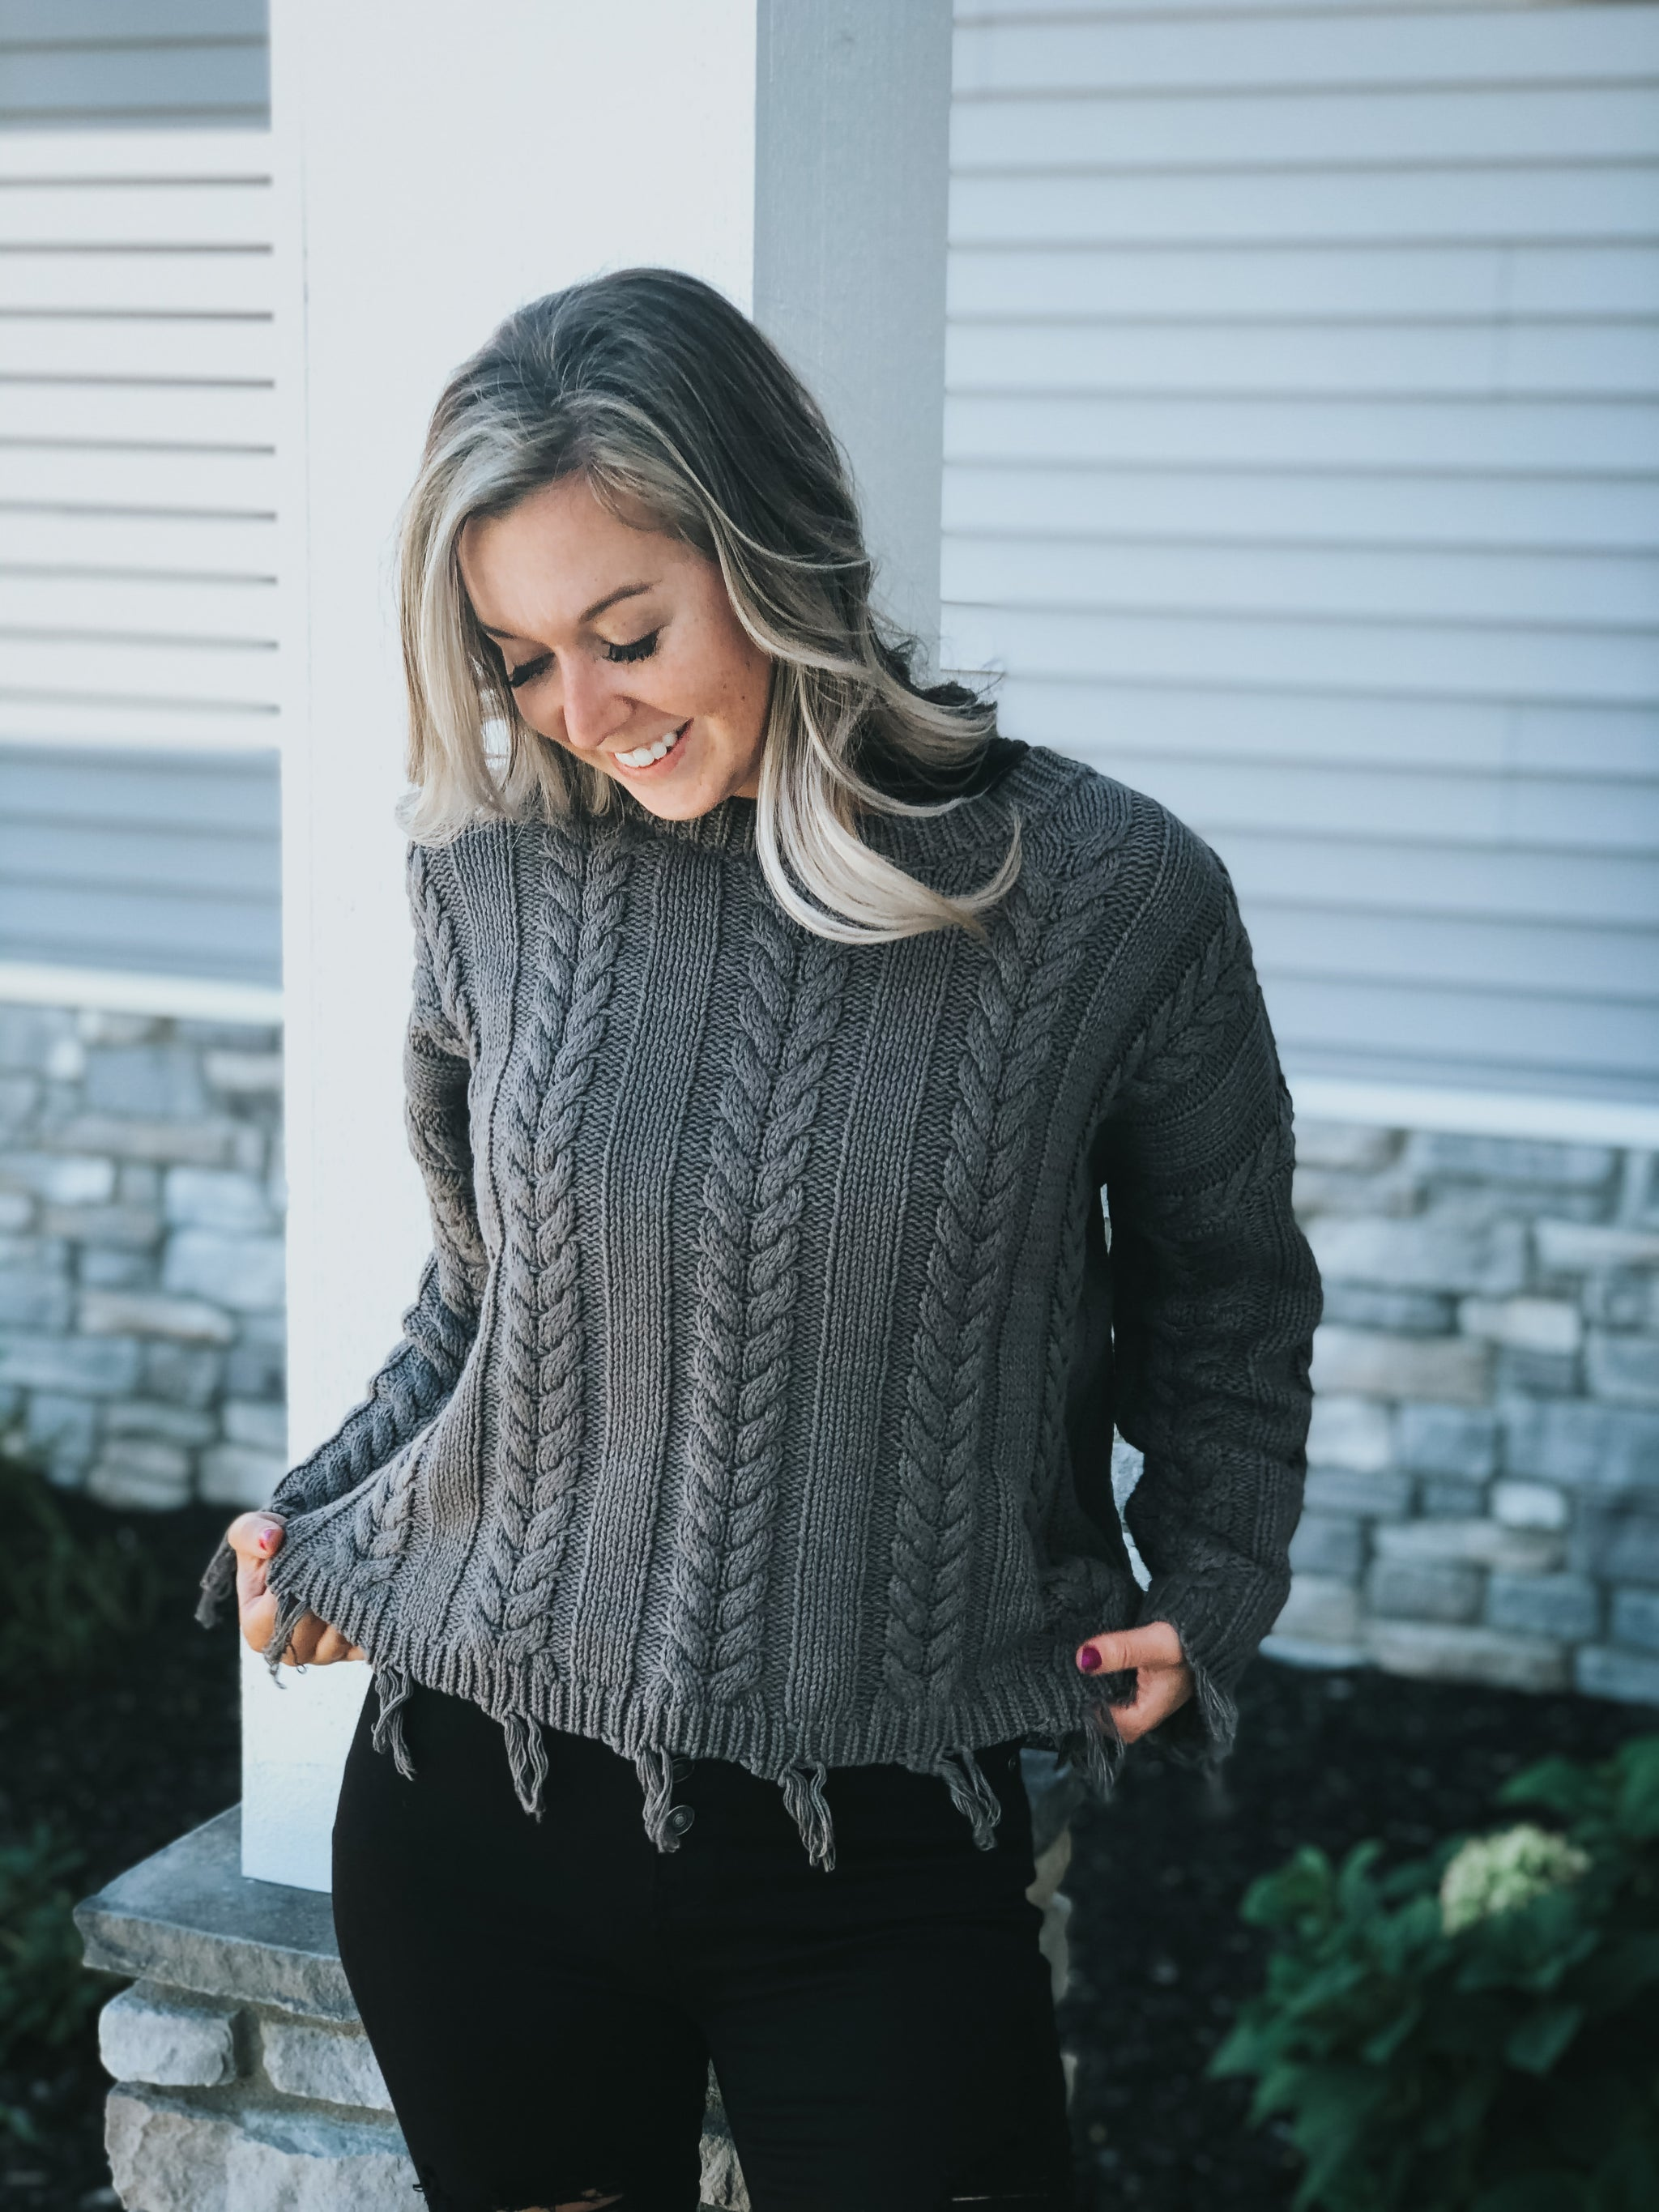 Braided Cozy Sweater